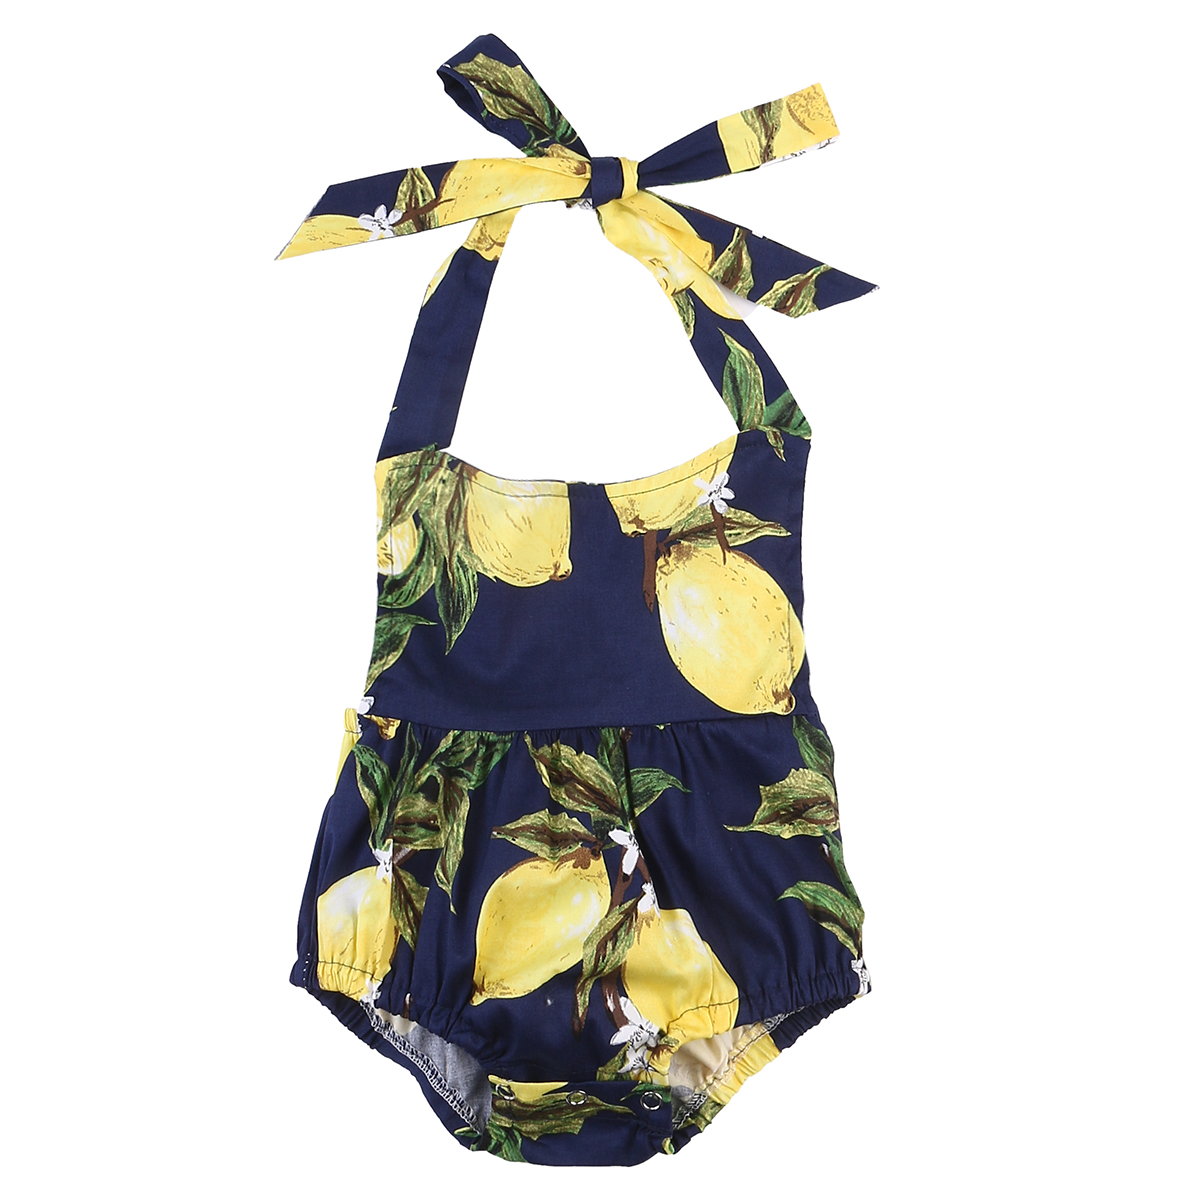 Summer 2017 Newborn Infant Baby Girls Romper Pear Floral Sleeveless Romper Cute Jumpsuit Outfit Baby Girl Clothing Sunsuit newborn infant baby clothes girl sleeveless floral romper jumpsuit playsuit outfit summer girls clothing cotton baby onesie